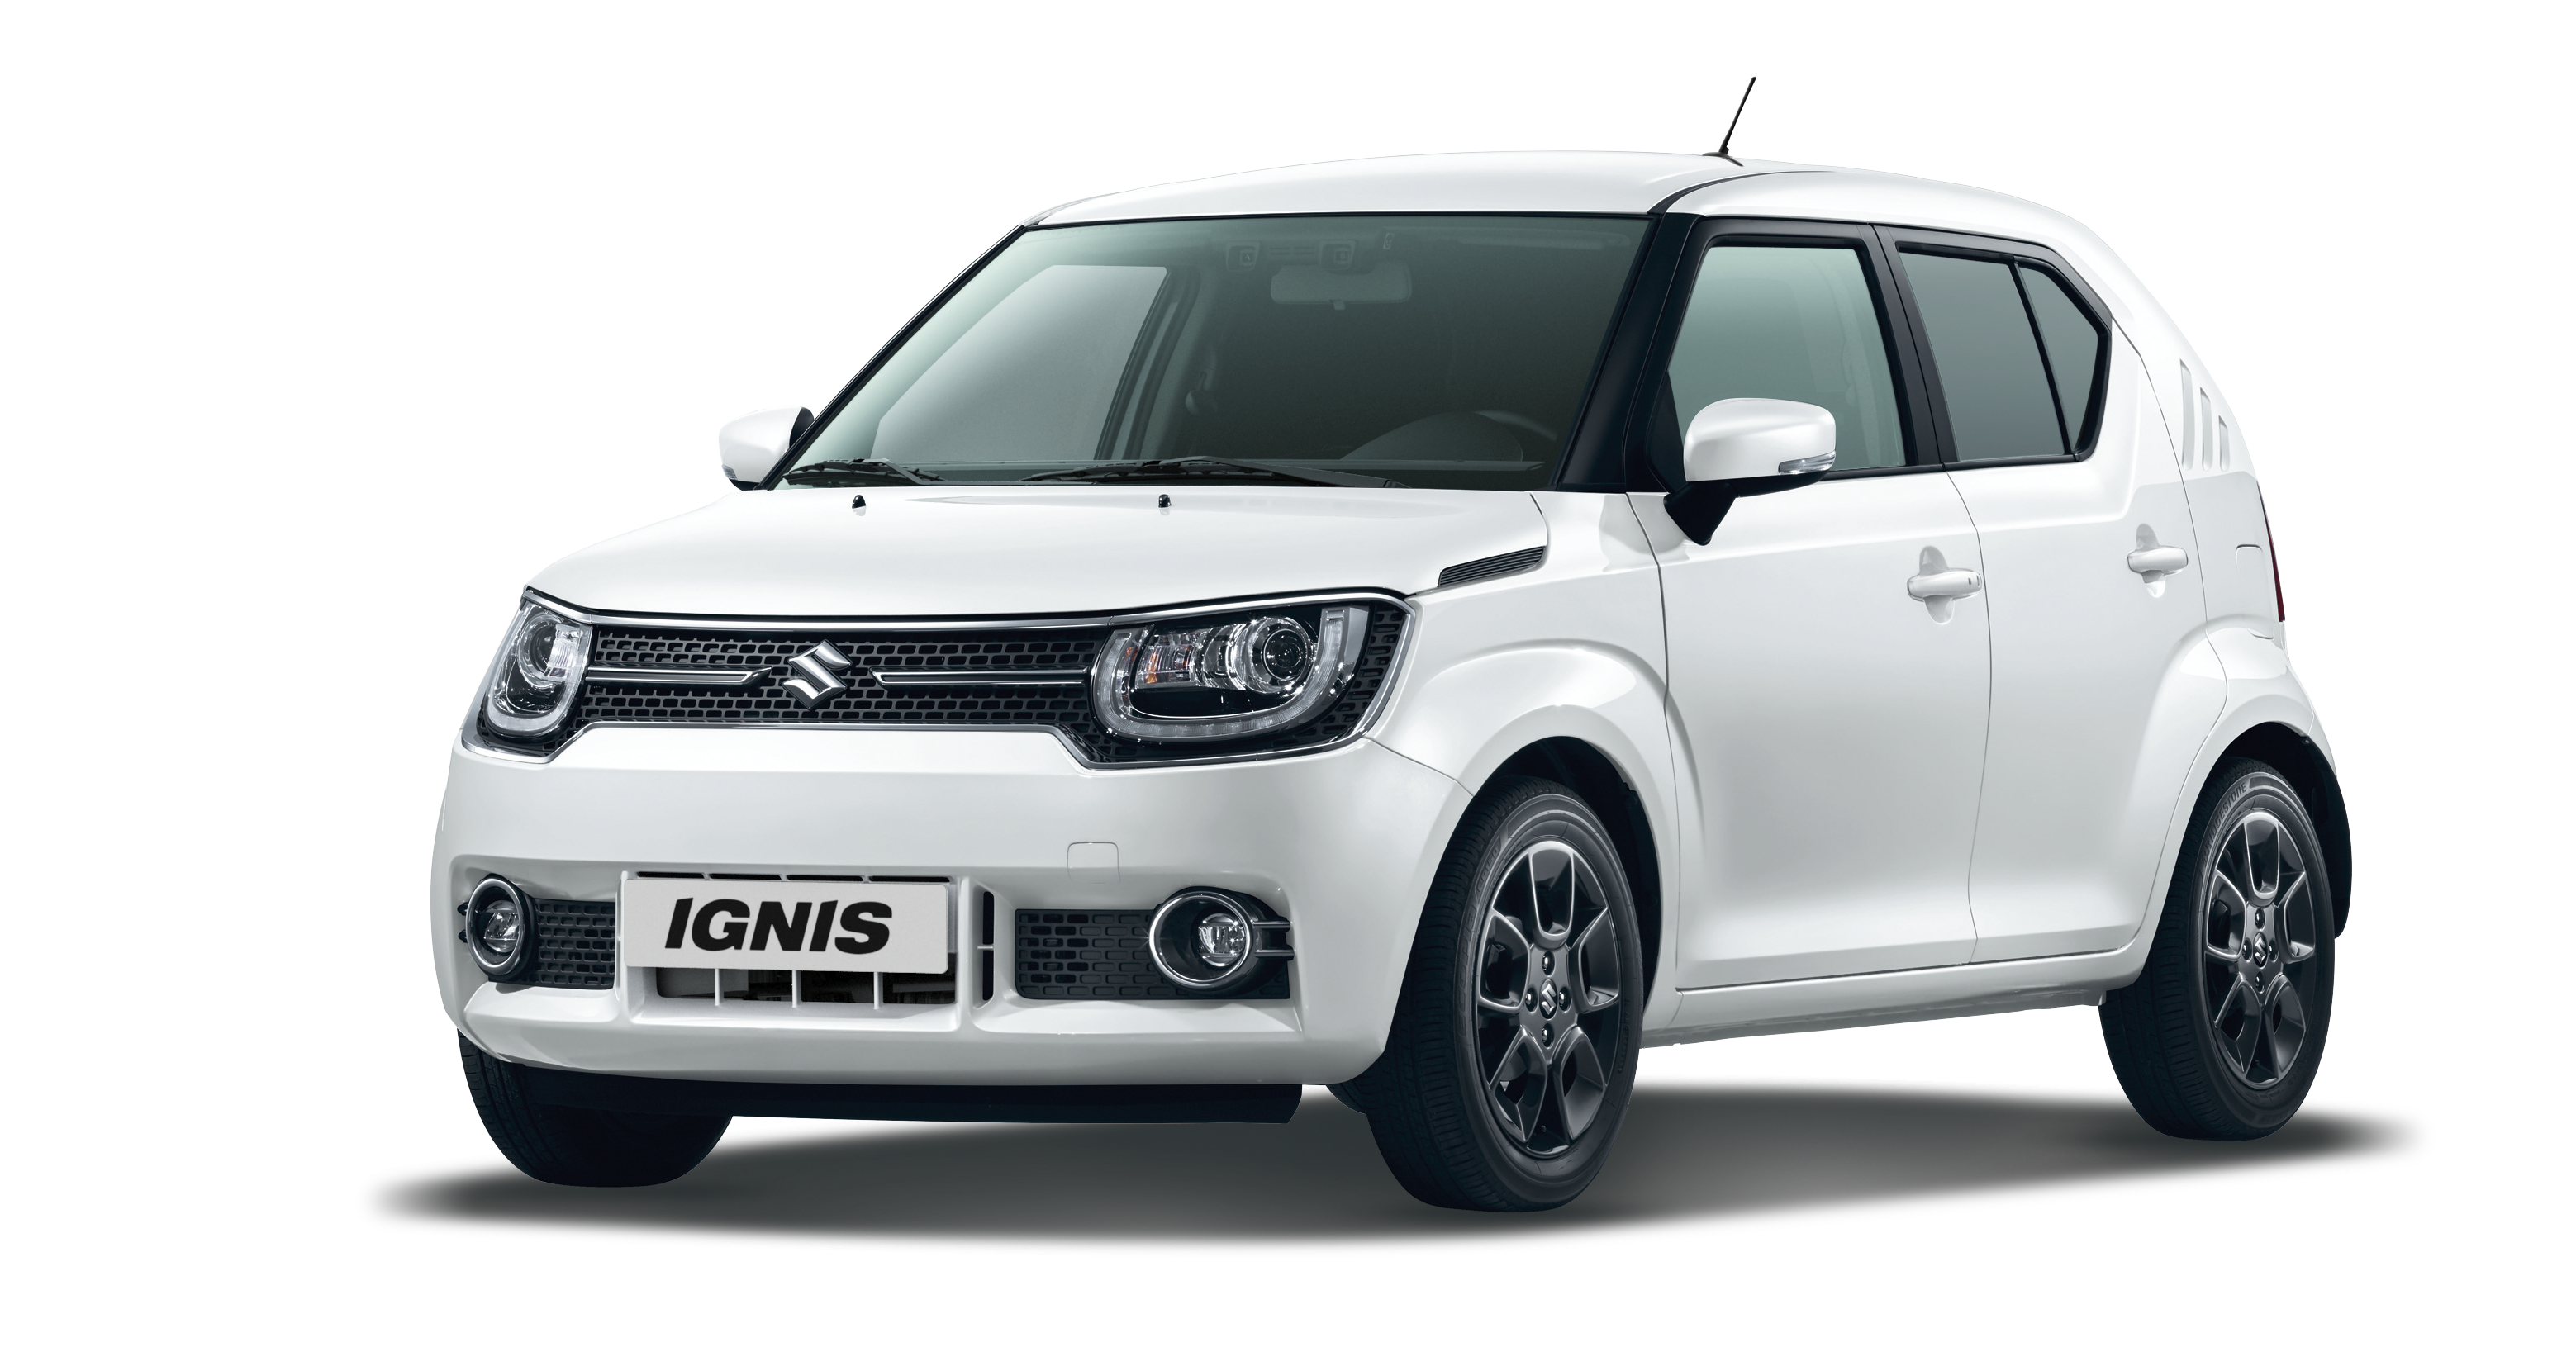 essai nouvelle suzuki ignis seyssinet alpes auto. Black Bedroom Furniture Sets. Home Design Ideas